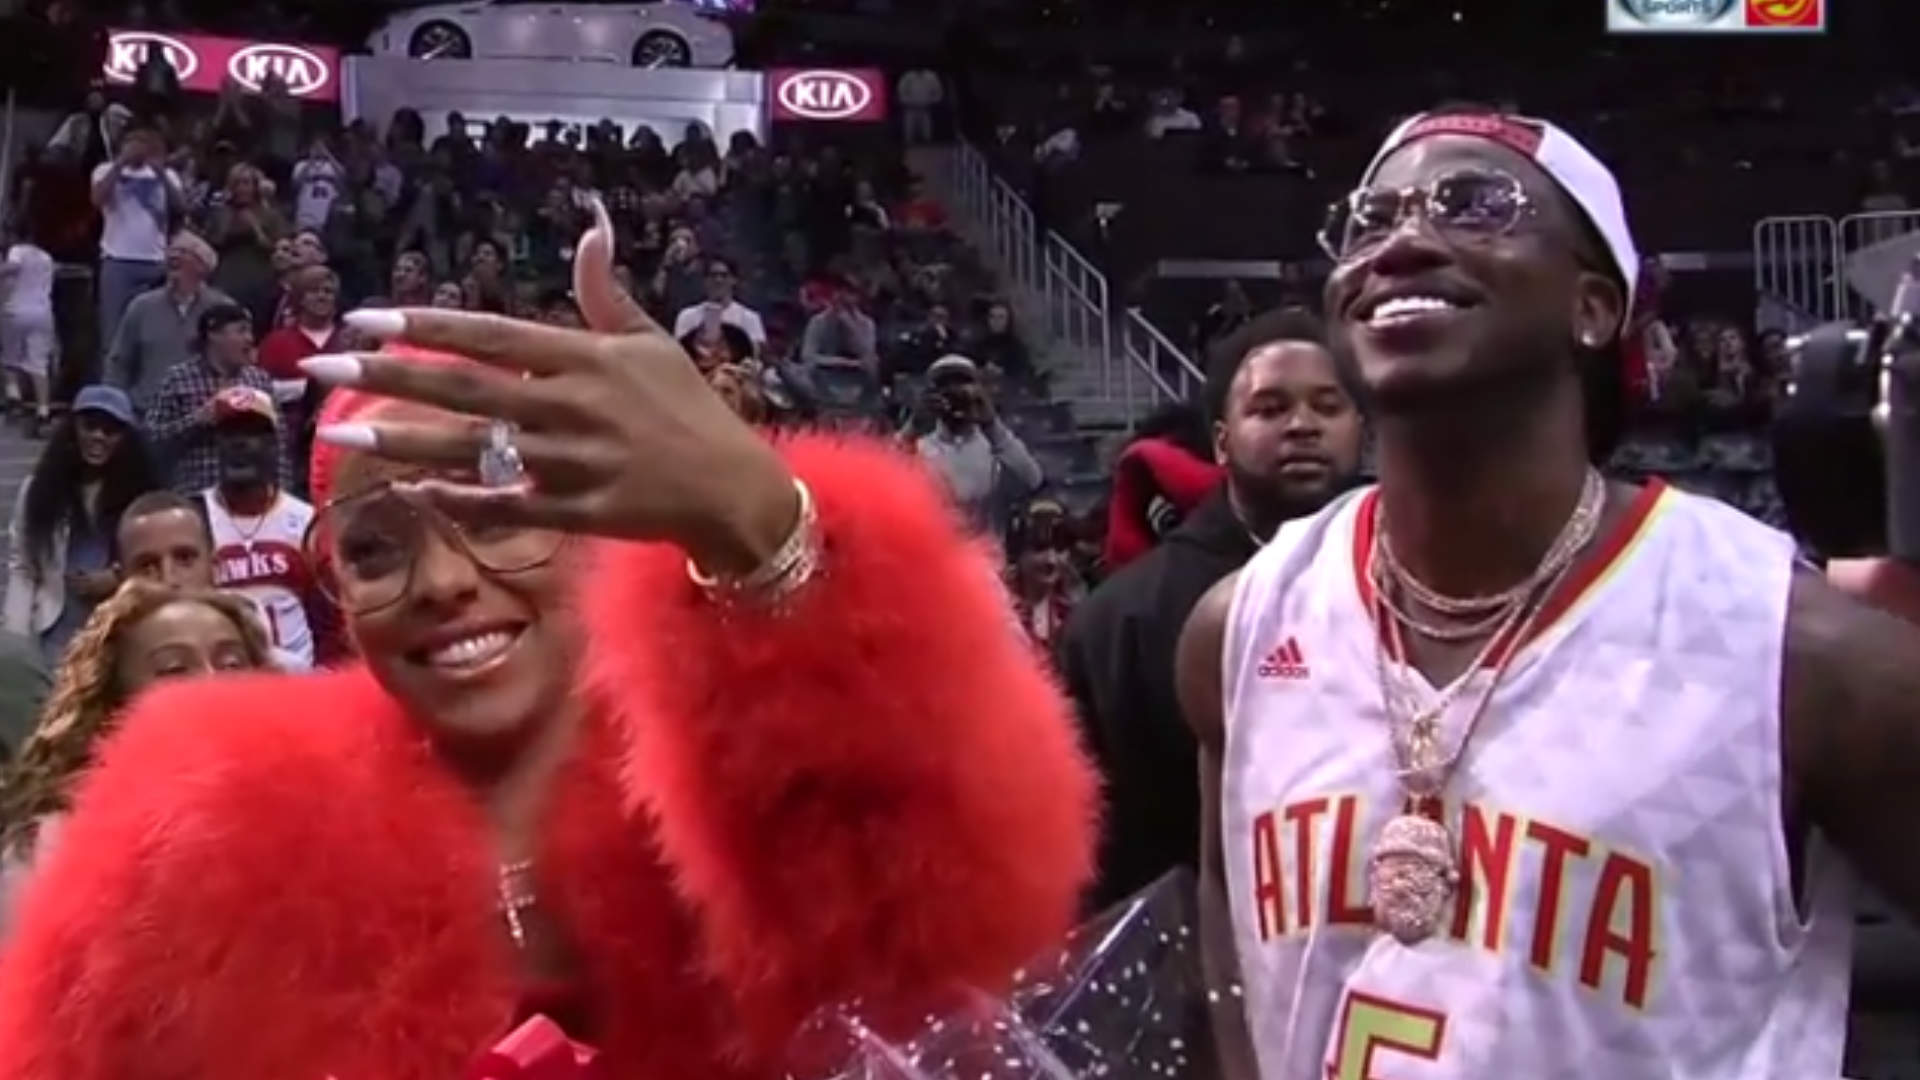 Rapper Gucci Mane proposes to girlfriend Keyshia Ka'oir at National Basketball Association game